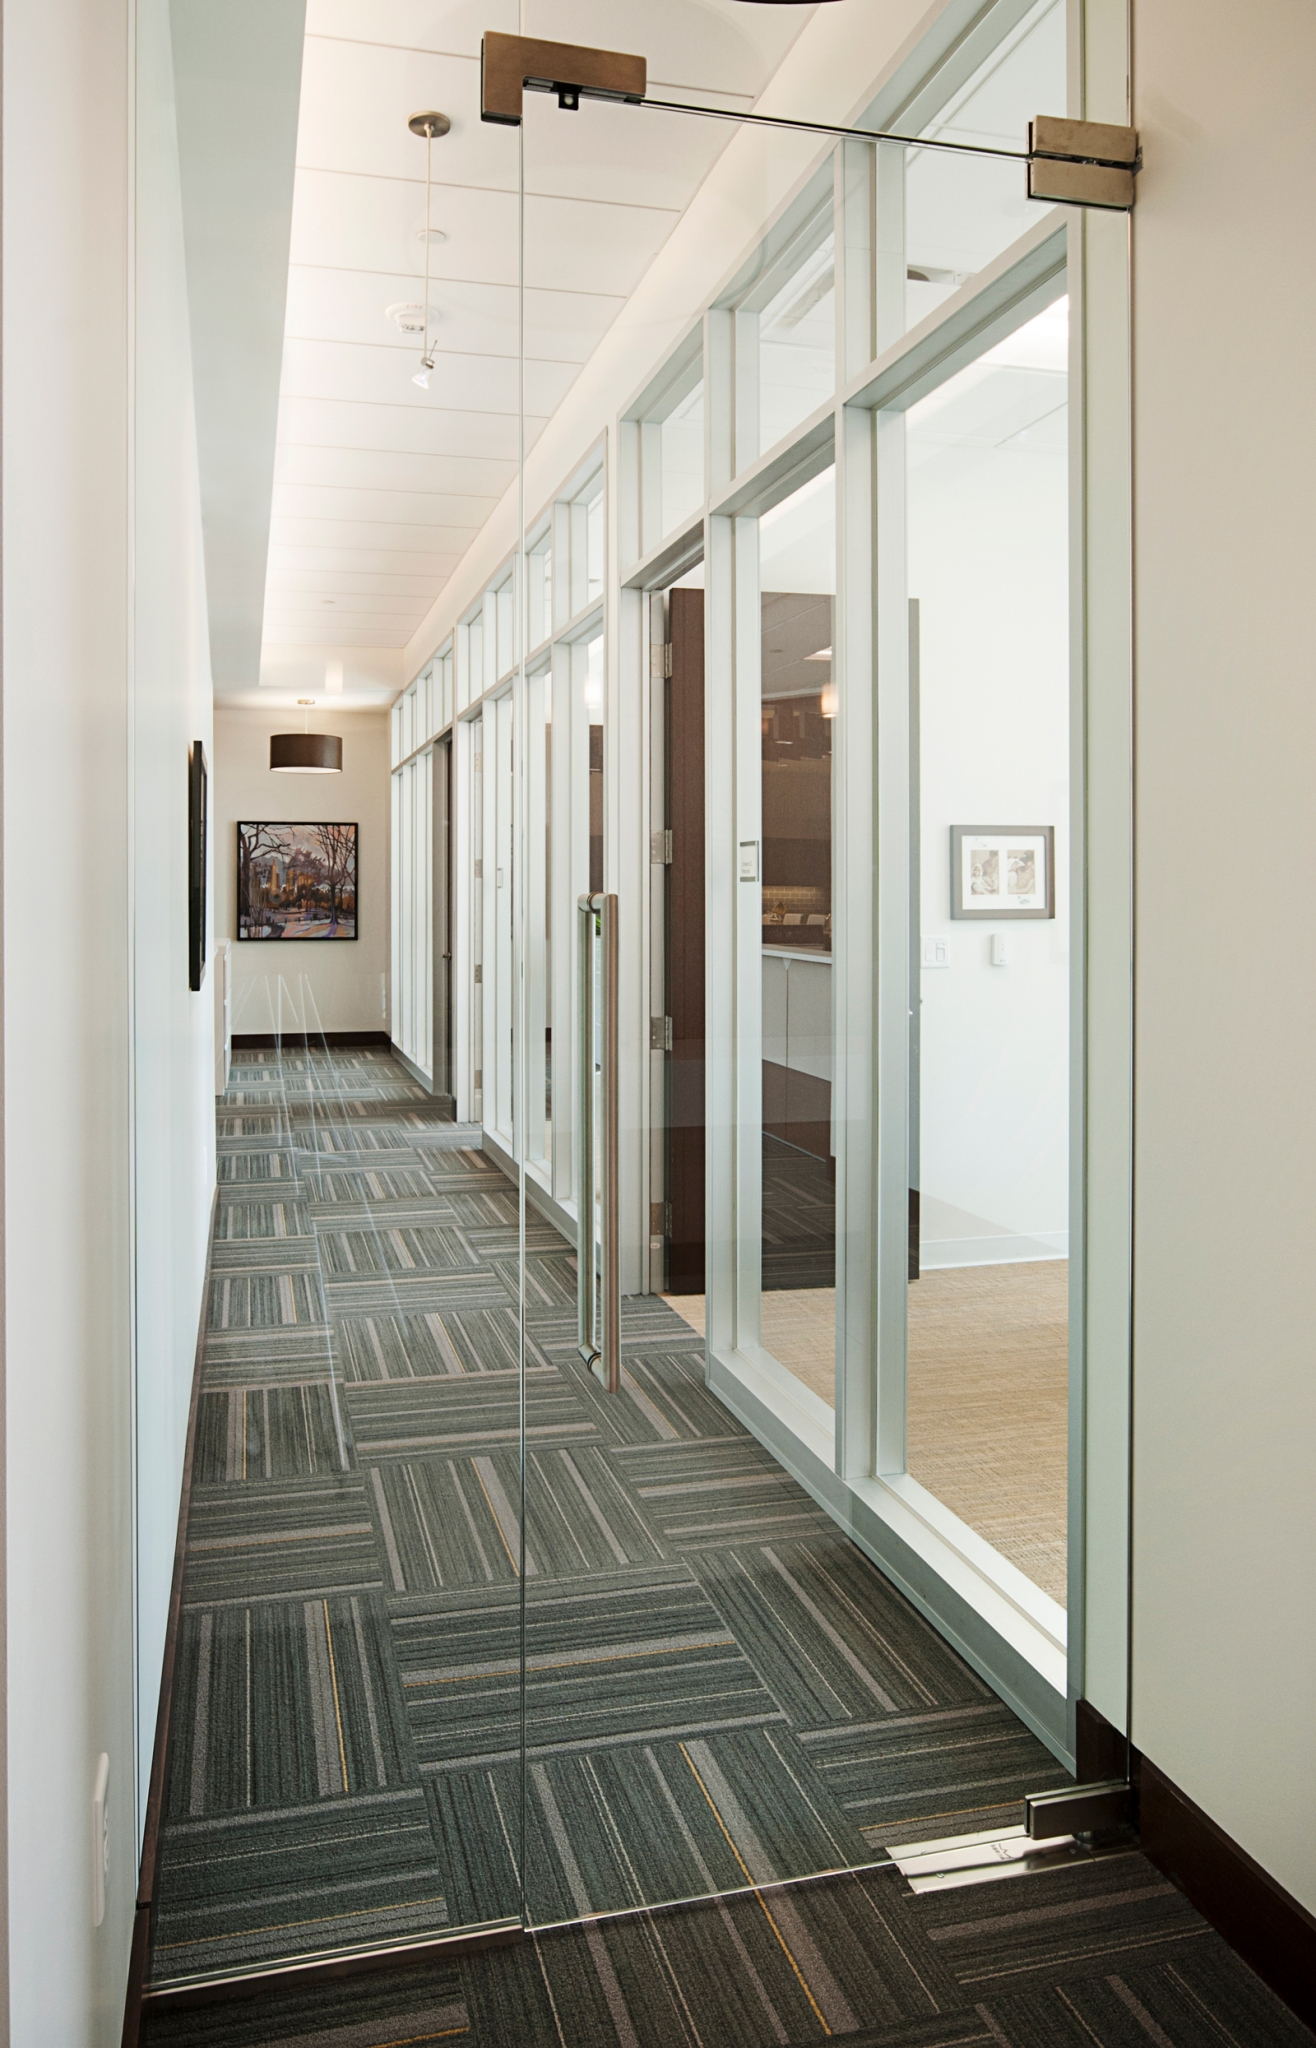 """Frameless glass door separating main conference room """"gallery"""" area from private offices."""